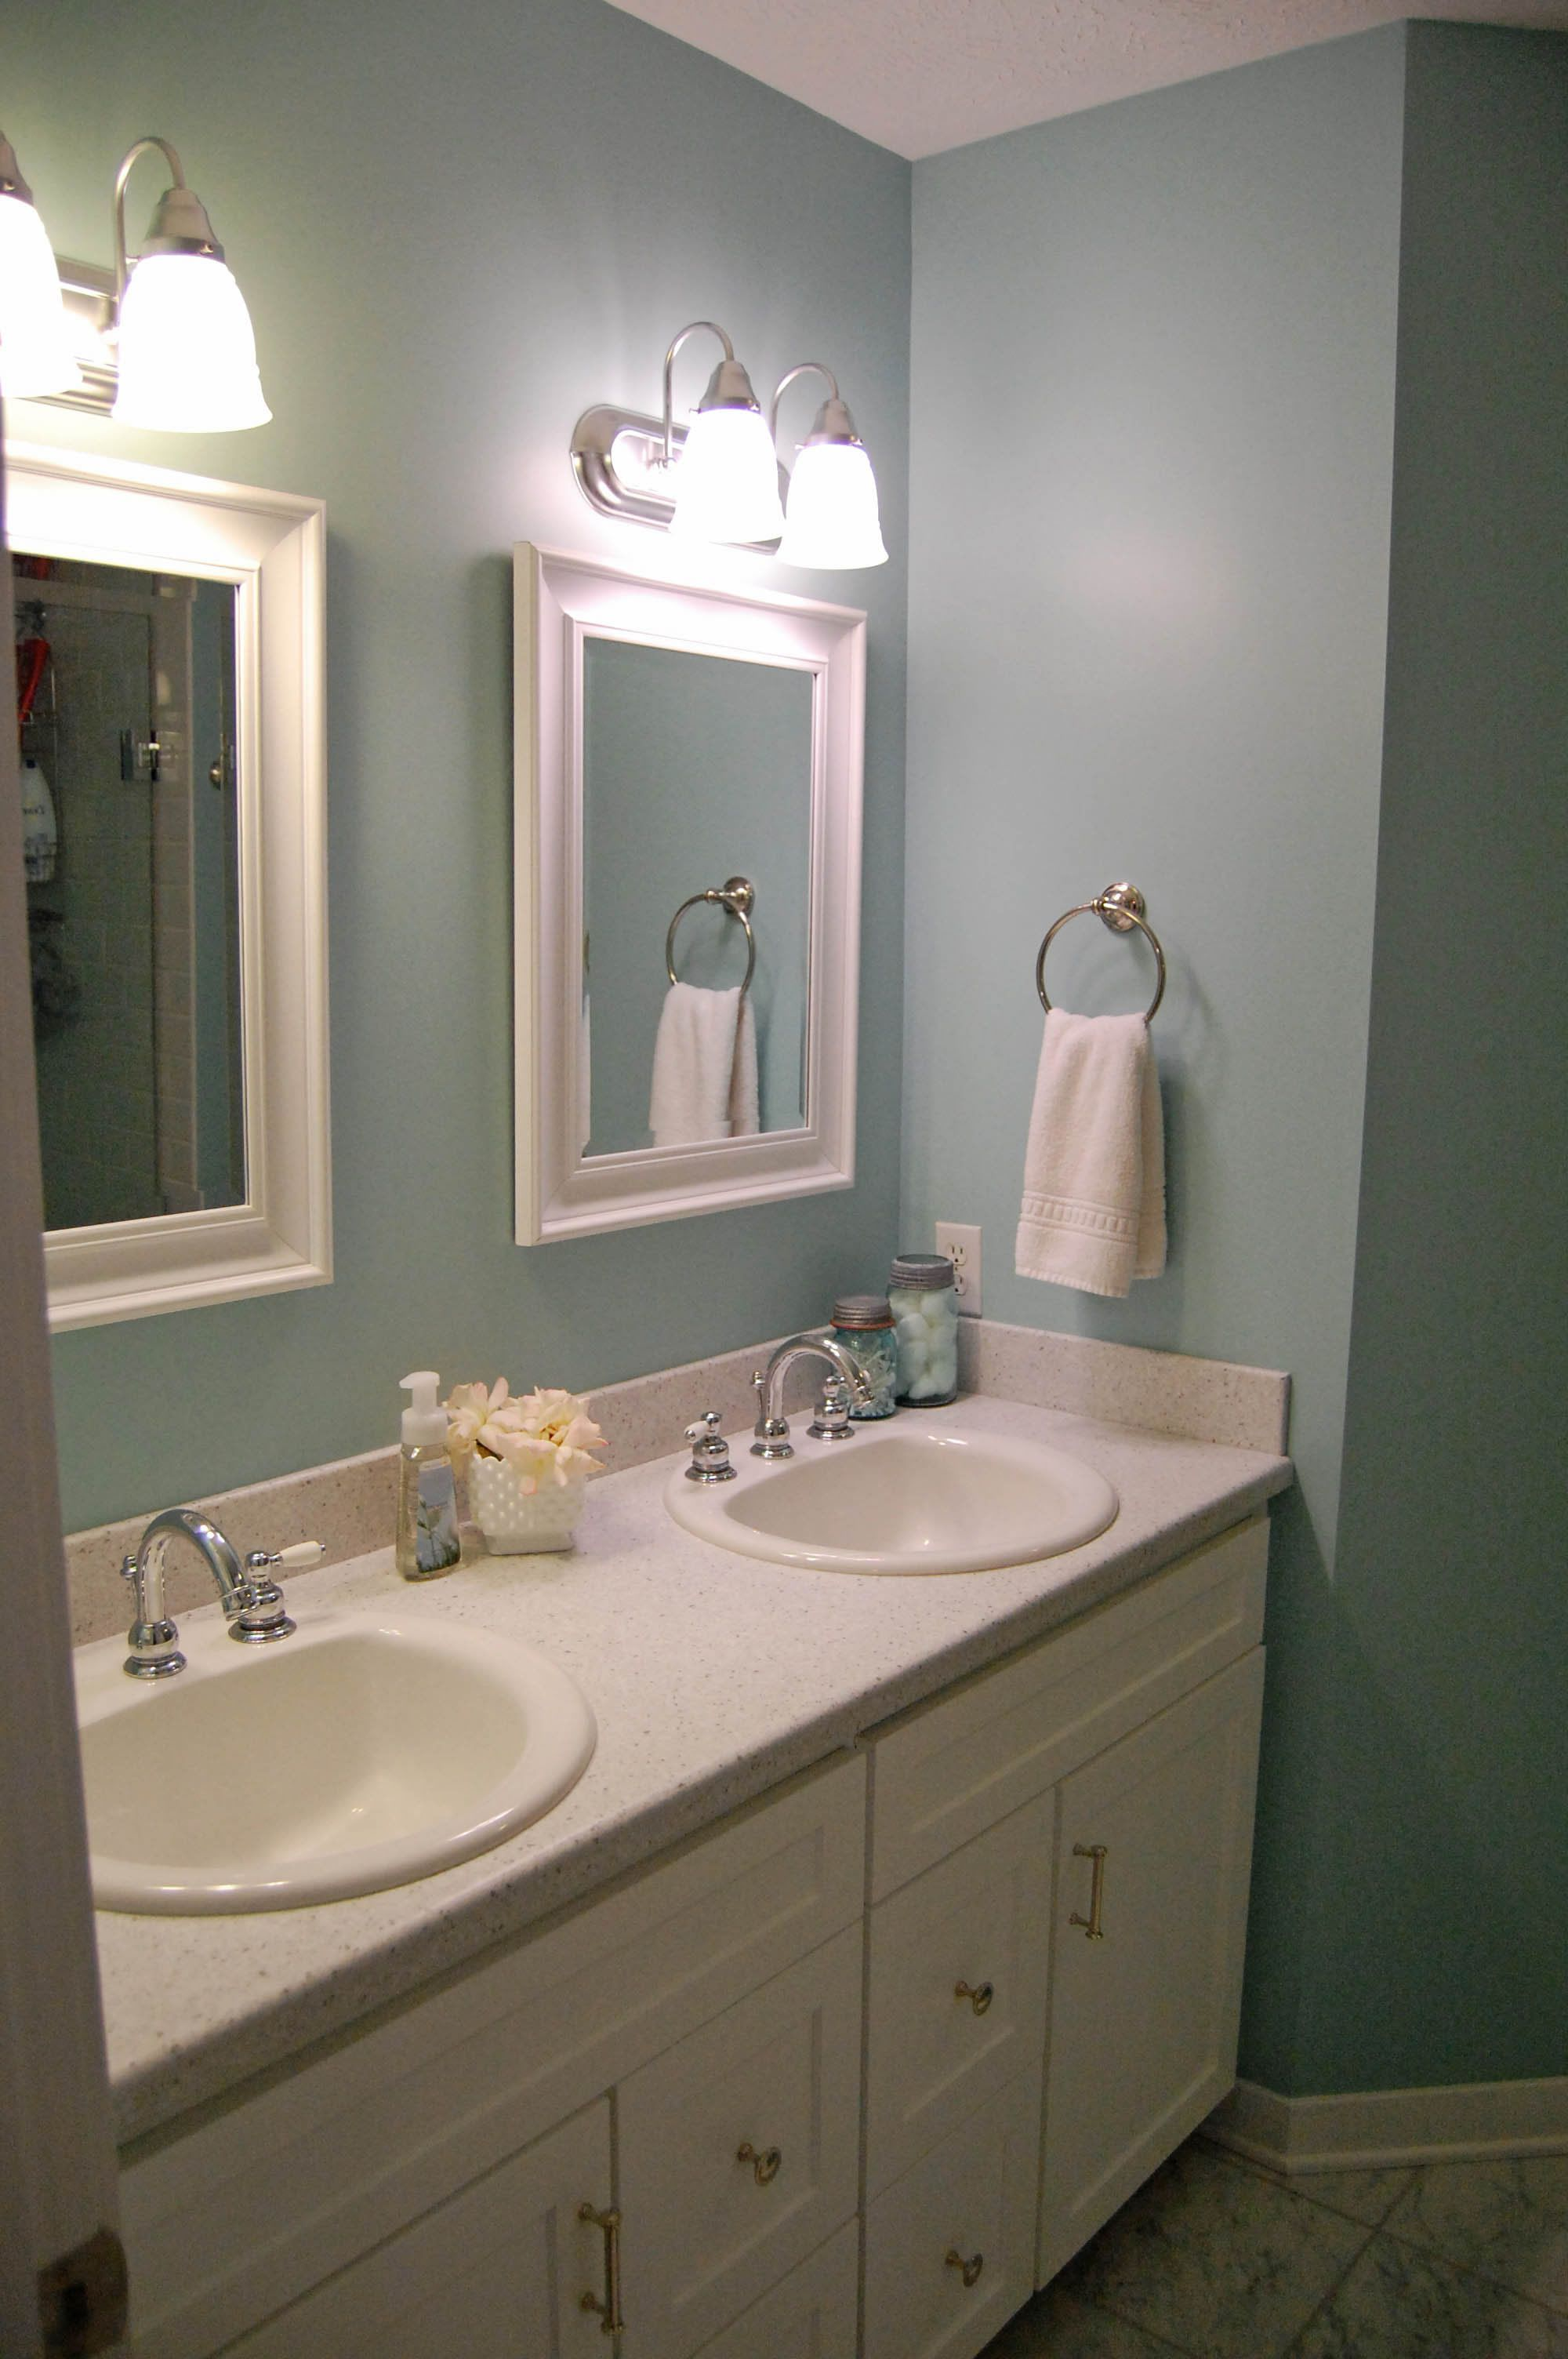 Sherwin Williams Watery I just finished painting my bathroom I love the color